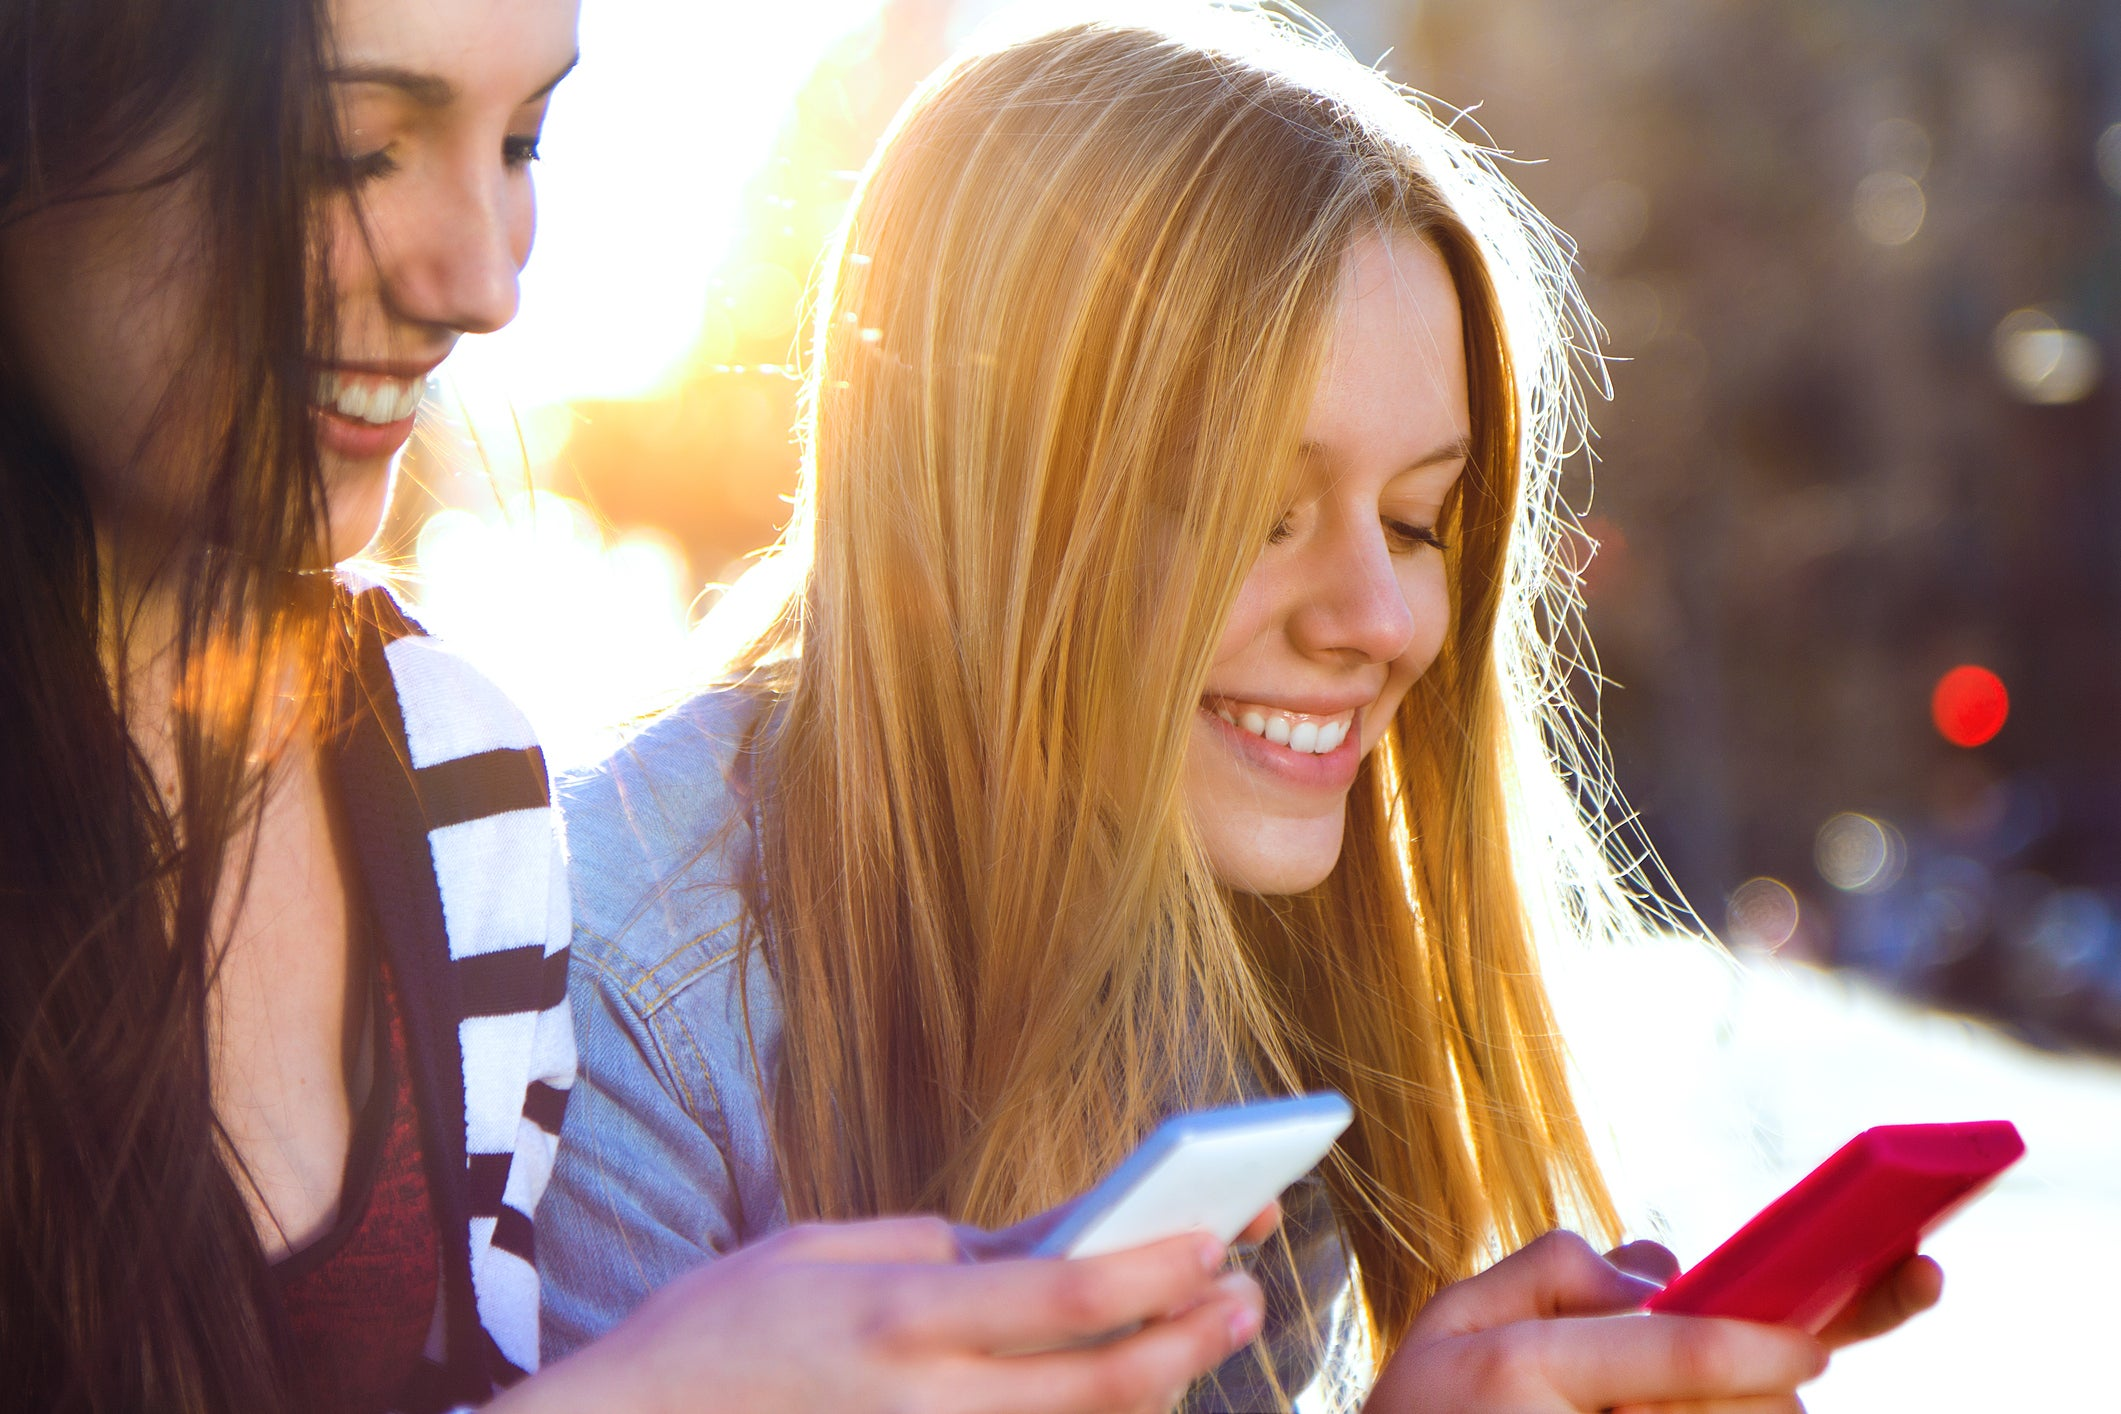 Two young women smile and look at their mobile phones.